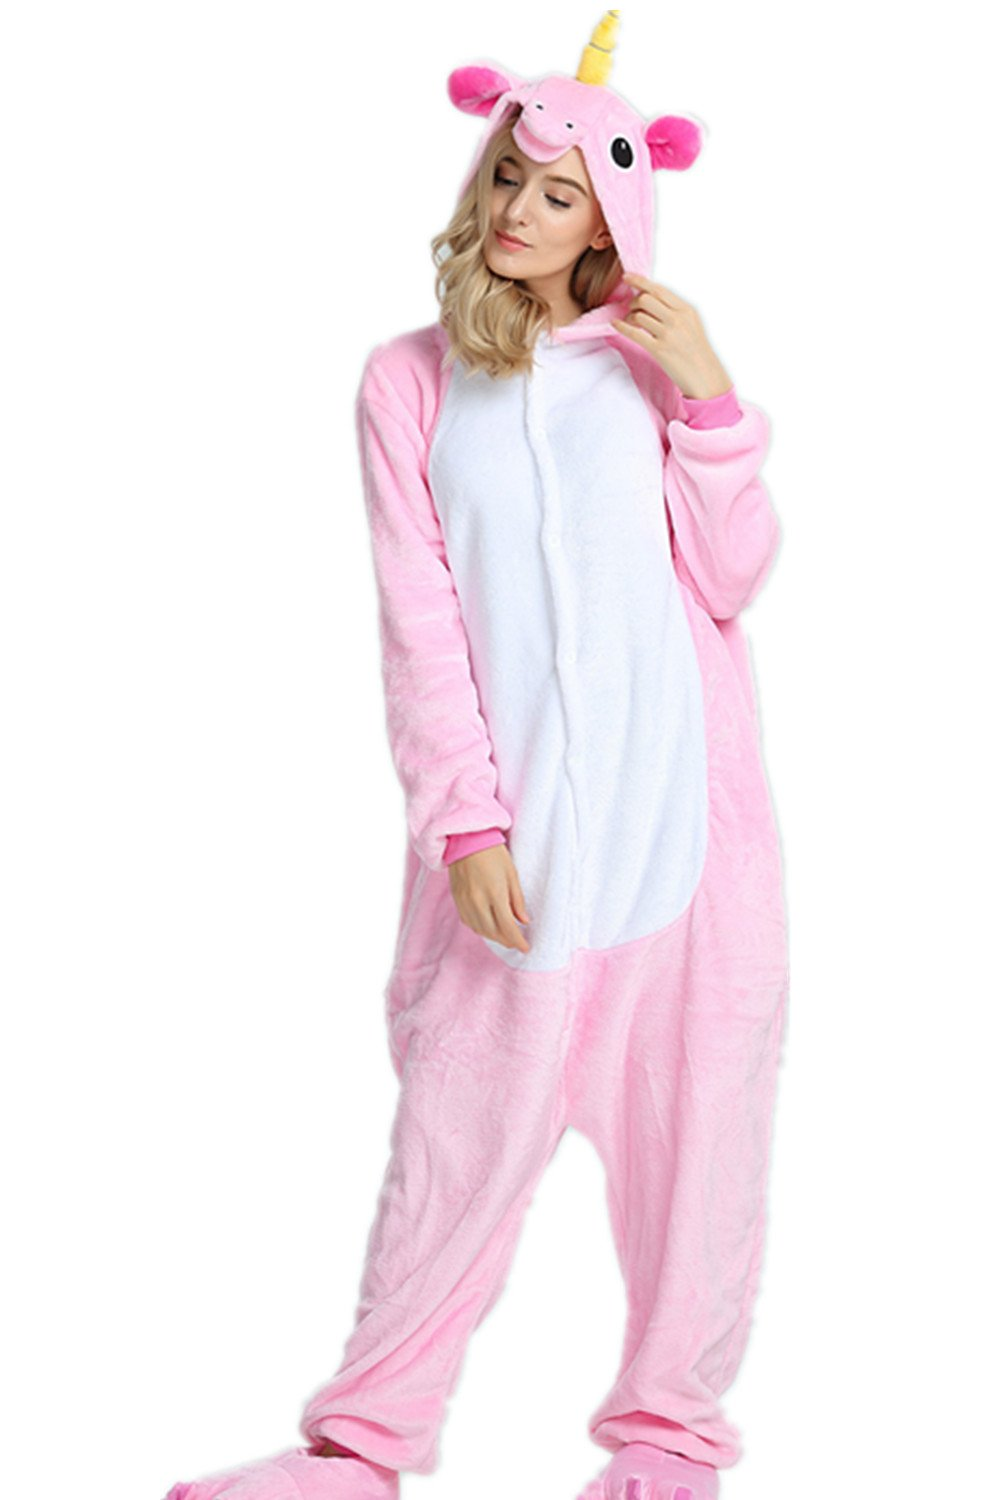 Kenmont Adult Animal Unicorn Pajamas Halloween Cosplay Costume Pajama Outfit (L, Pink)